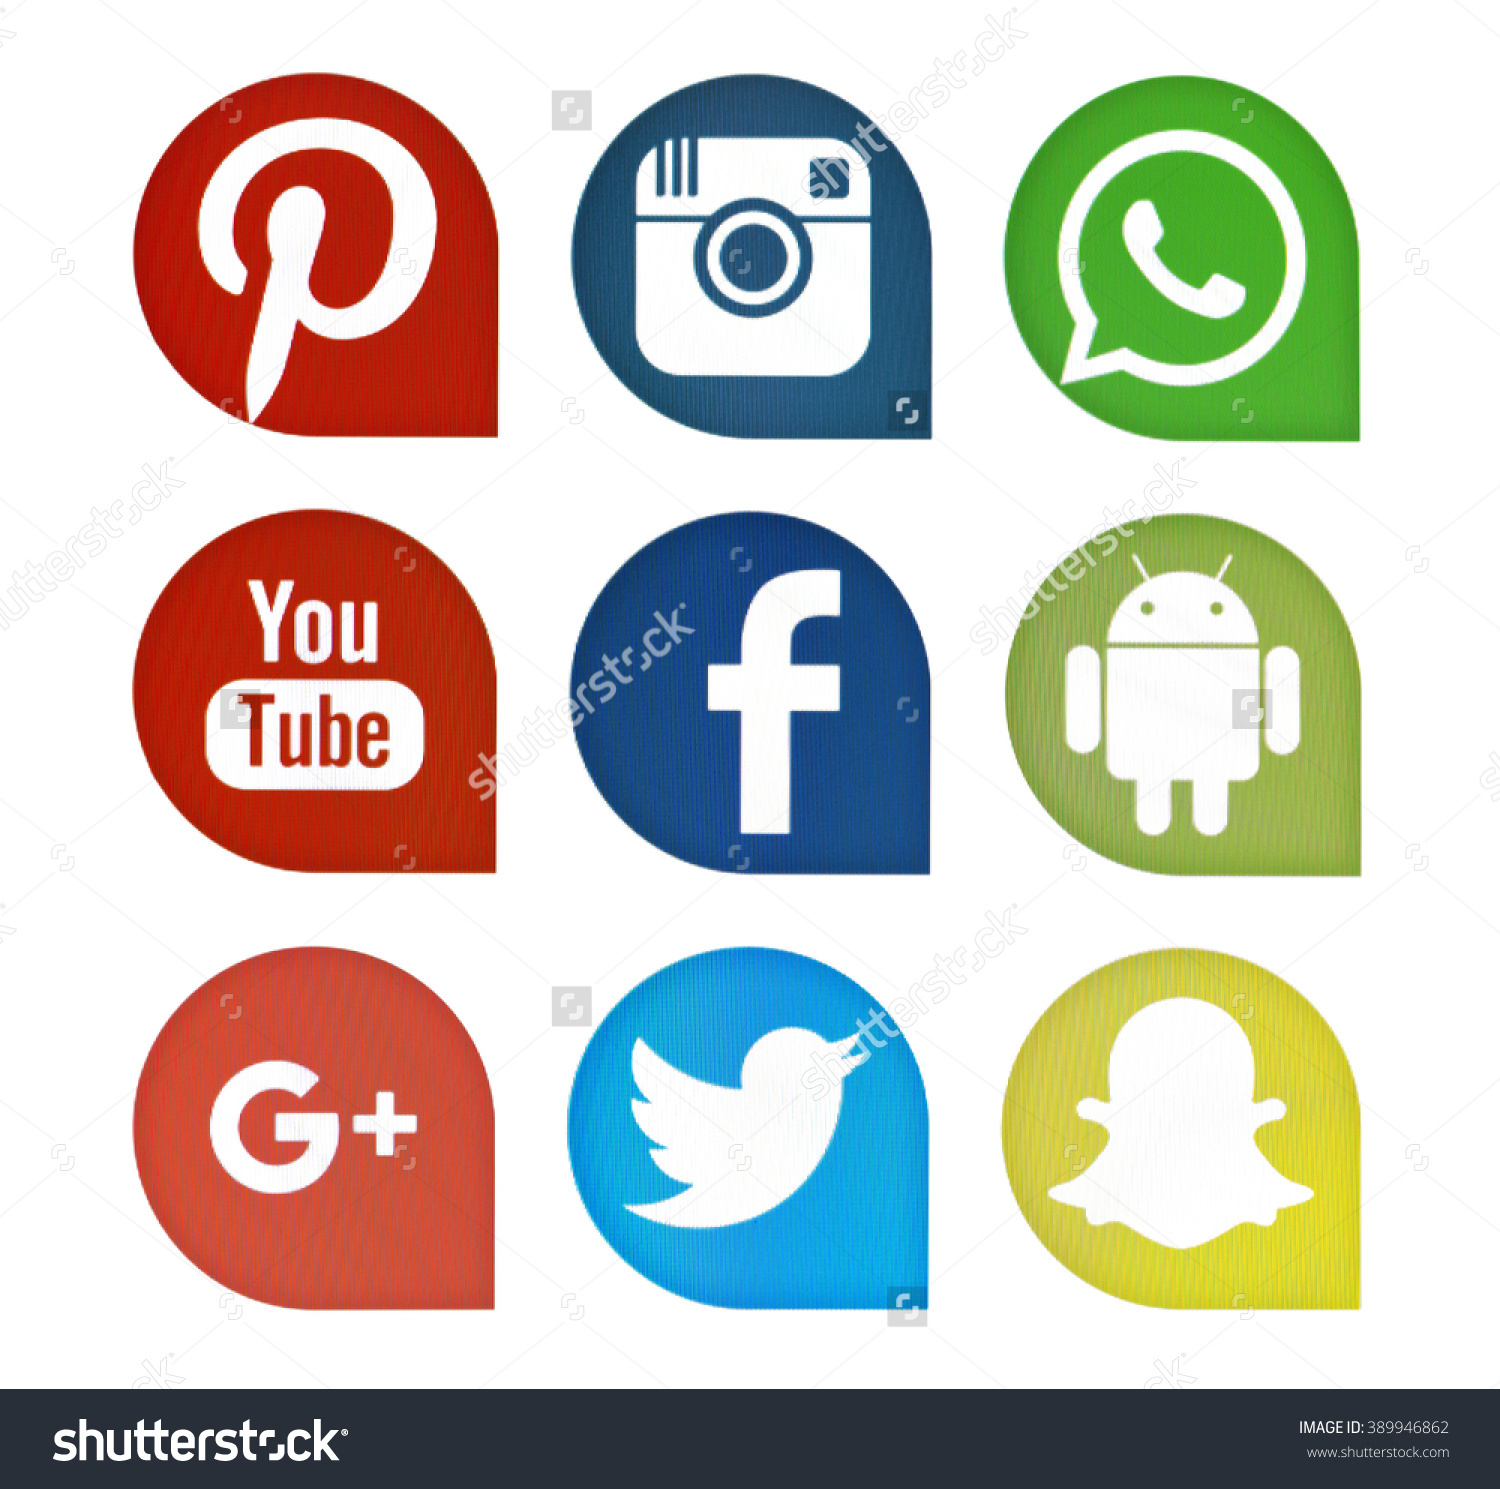 Icon clipart facebook and instagram graphic transparent library Kiev, Ukraine - May 23, 2016: Set of most popular social media ... graphic transparent library